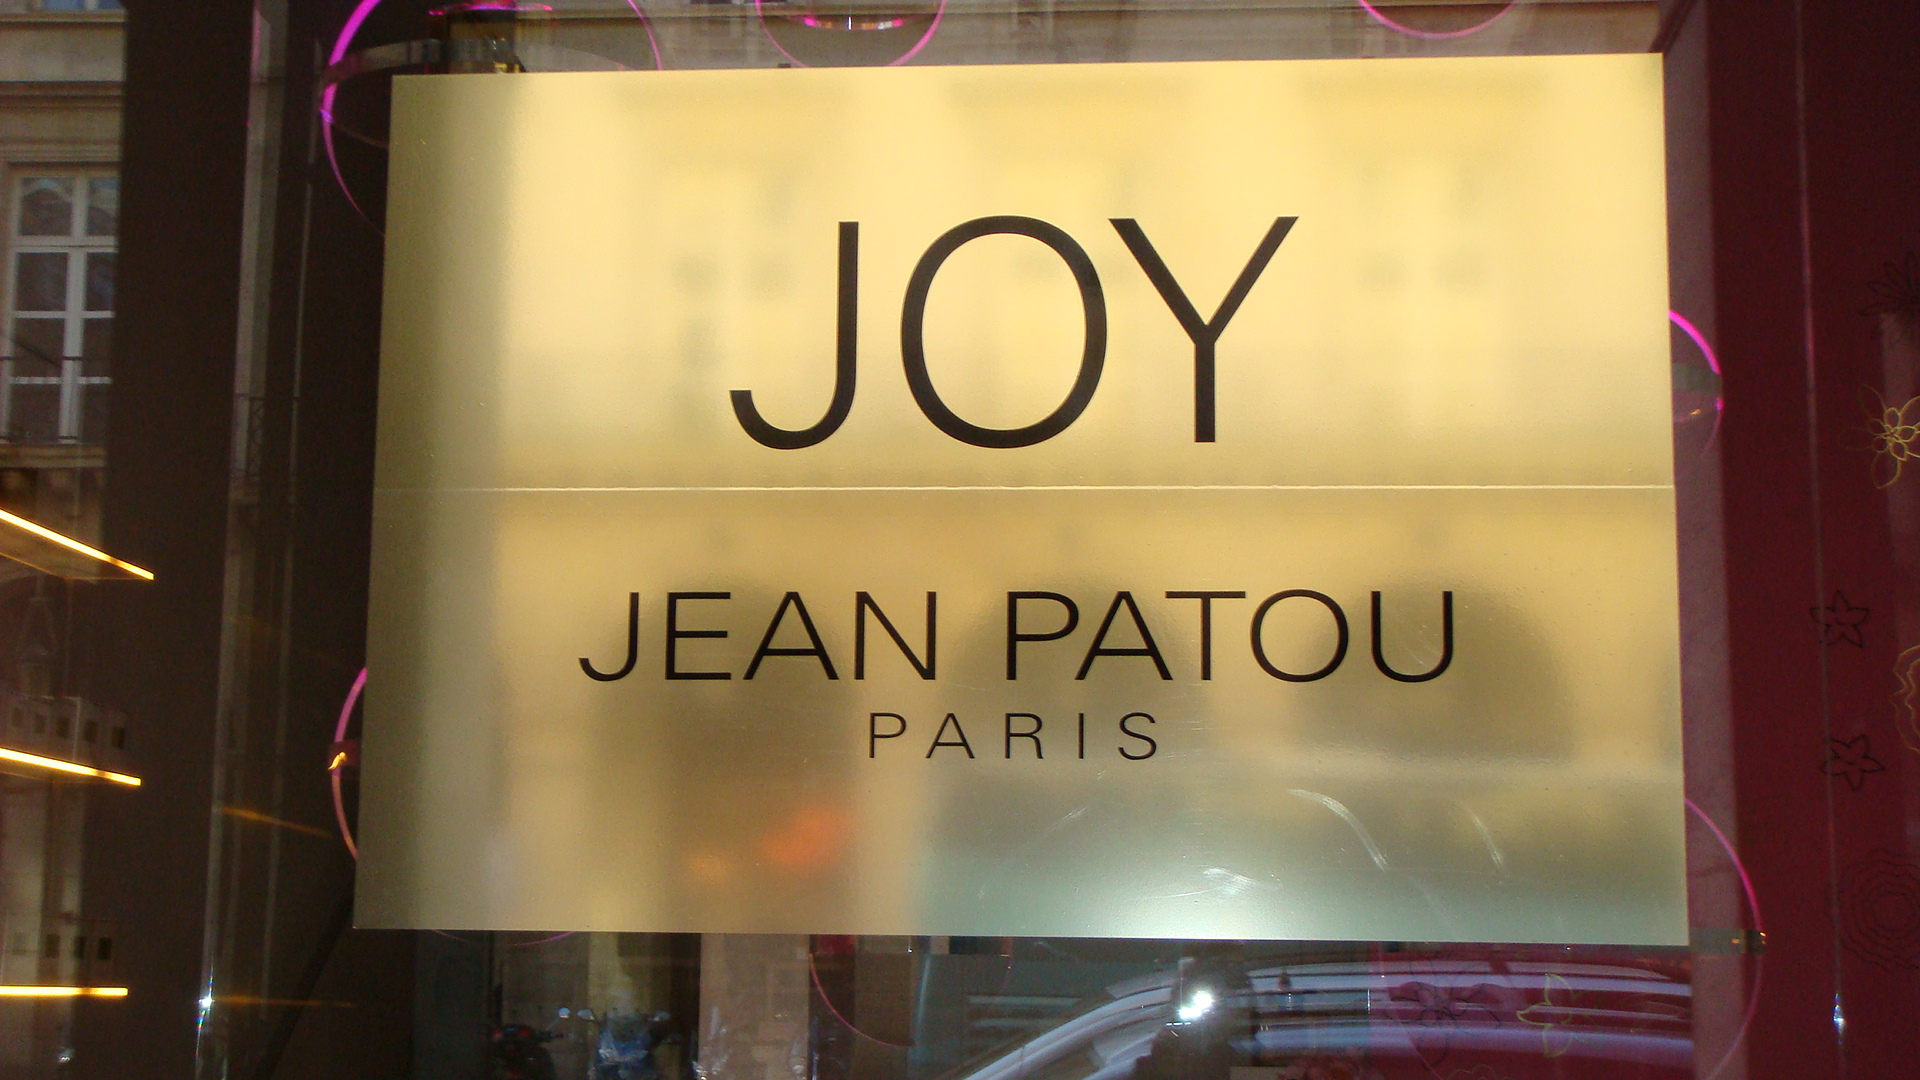 Joy (Jean Patou, Paris)